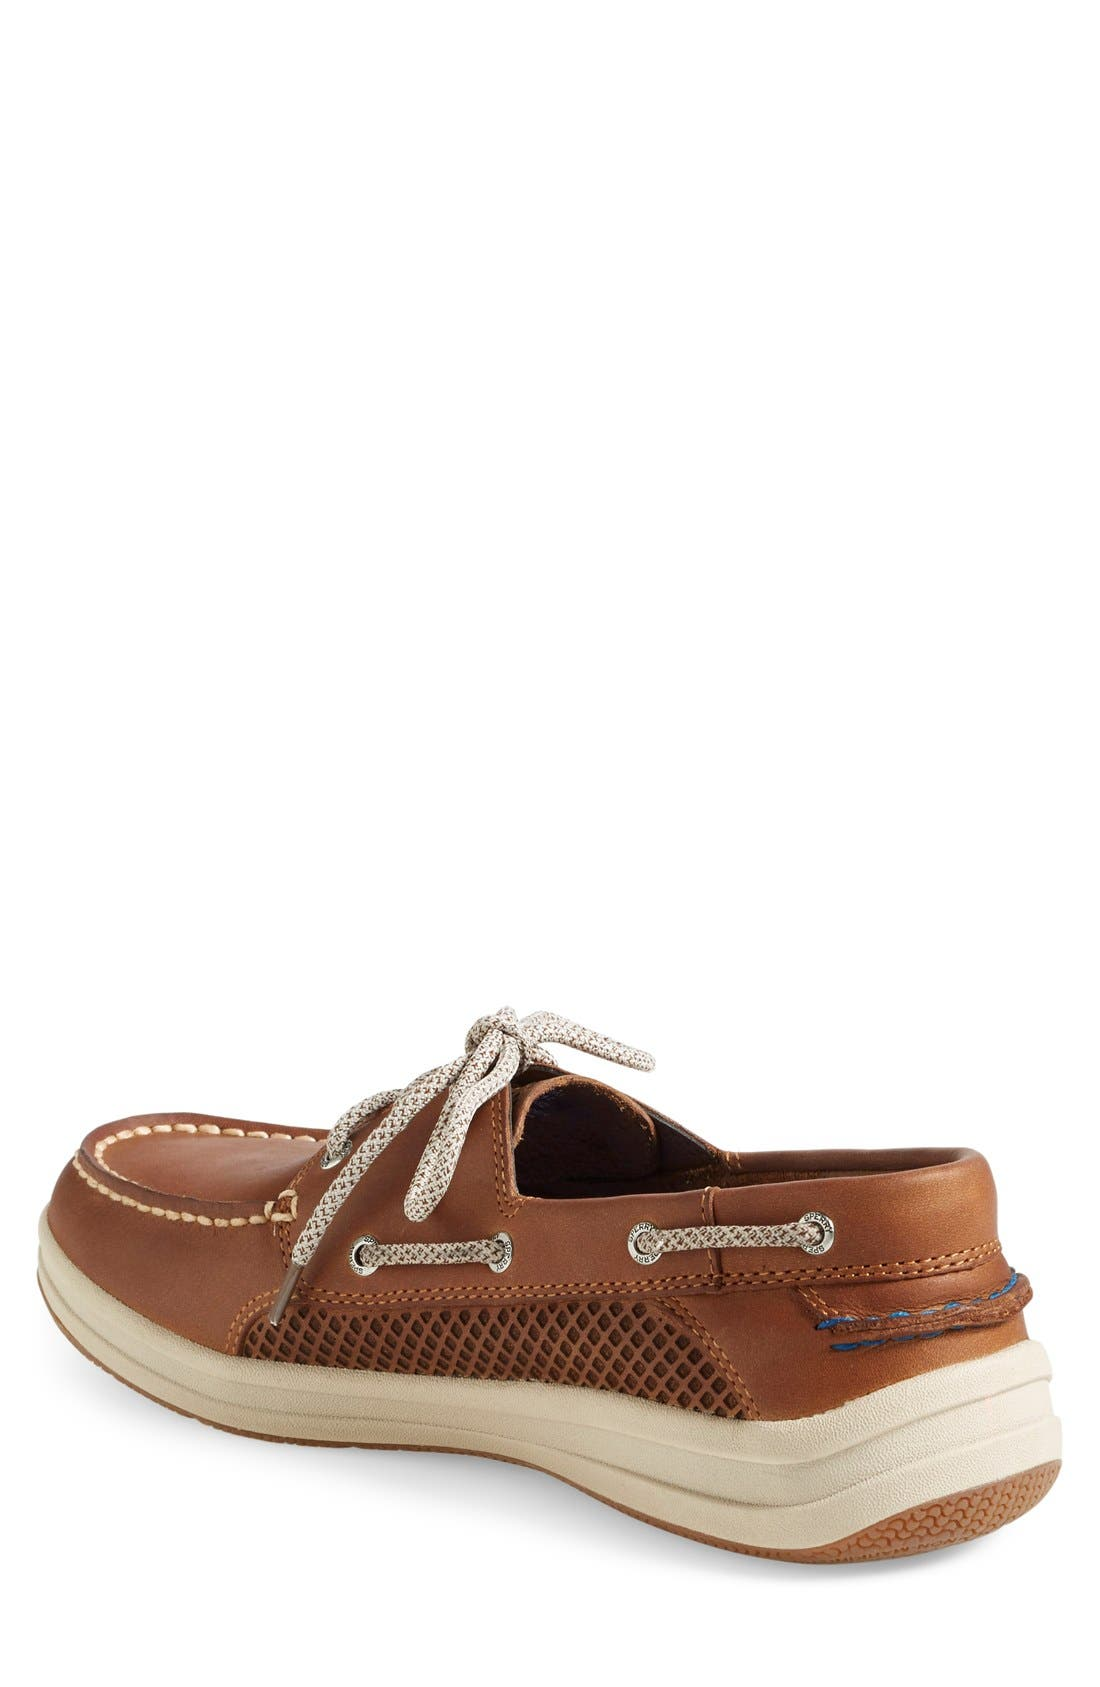 'Gamefish' Boat Shoe,                             Alternate thumbnail 2, color,                             COGNAC LEATHER